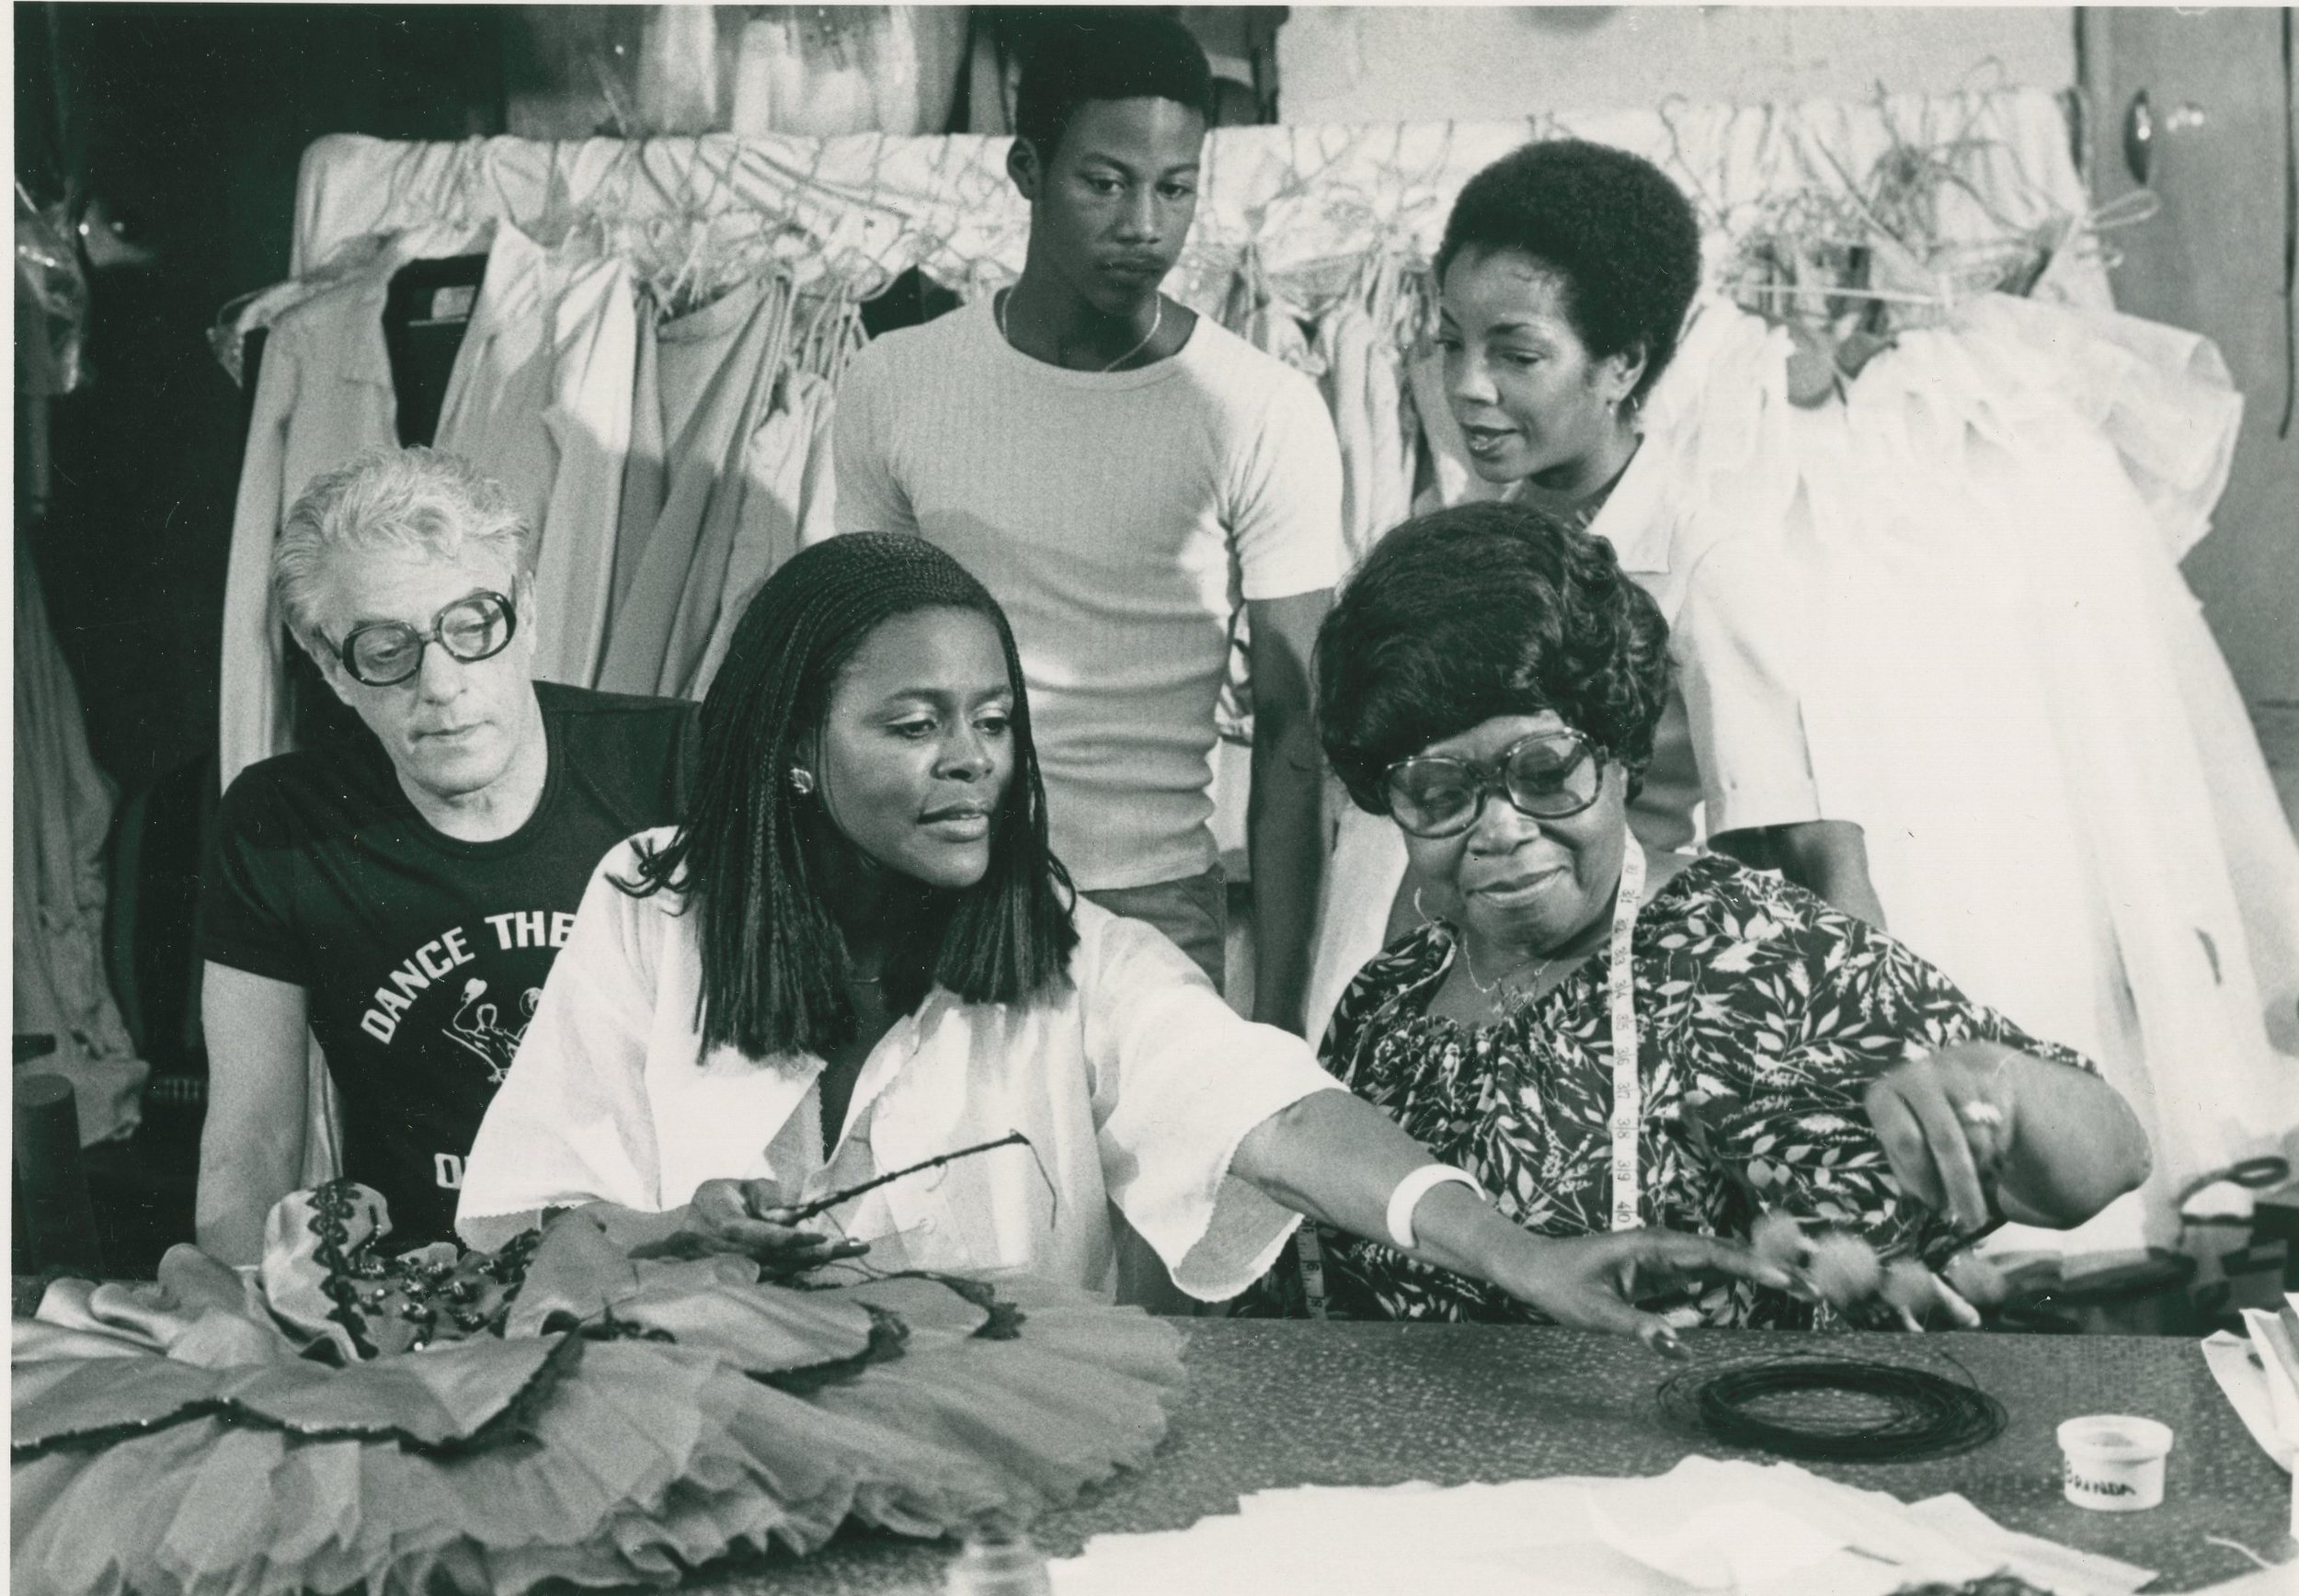 Karel Shook, Cicely Tyson, and Zelda Winn